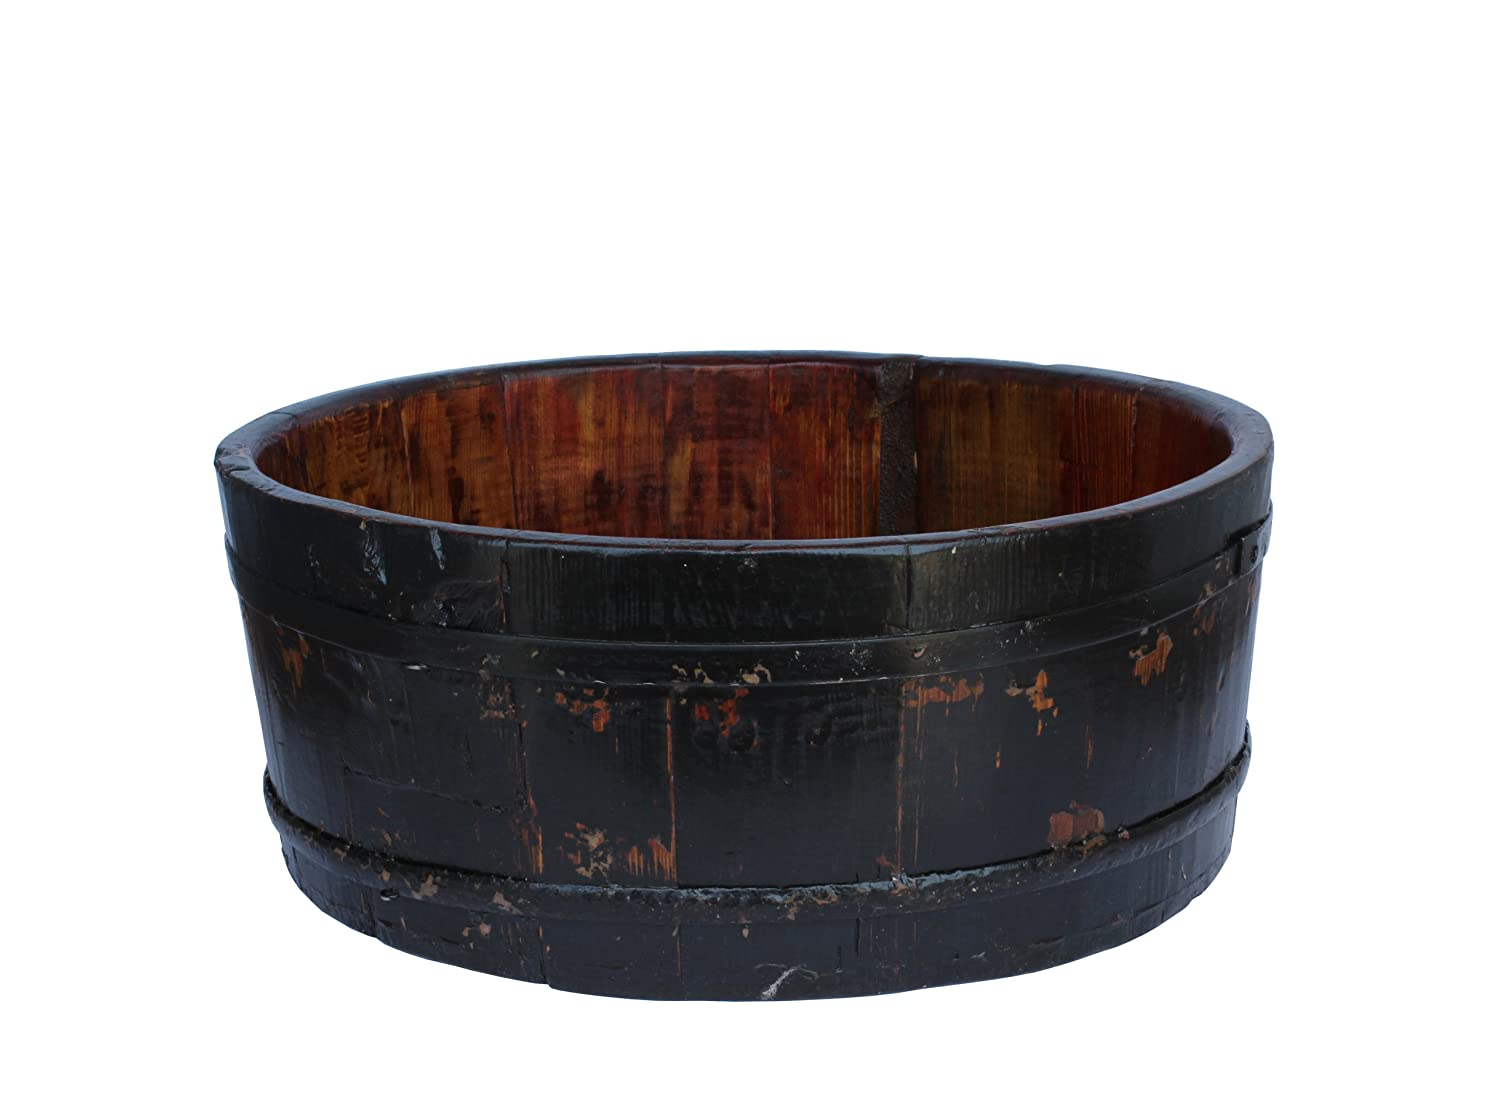 Wooden Basin Bucket